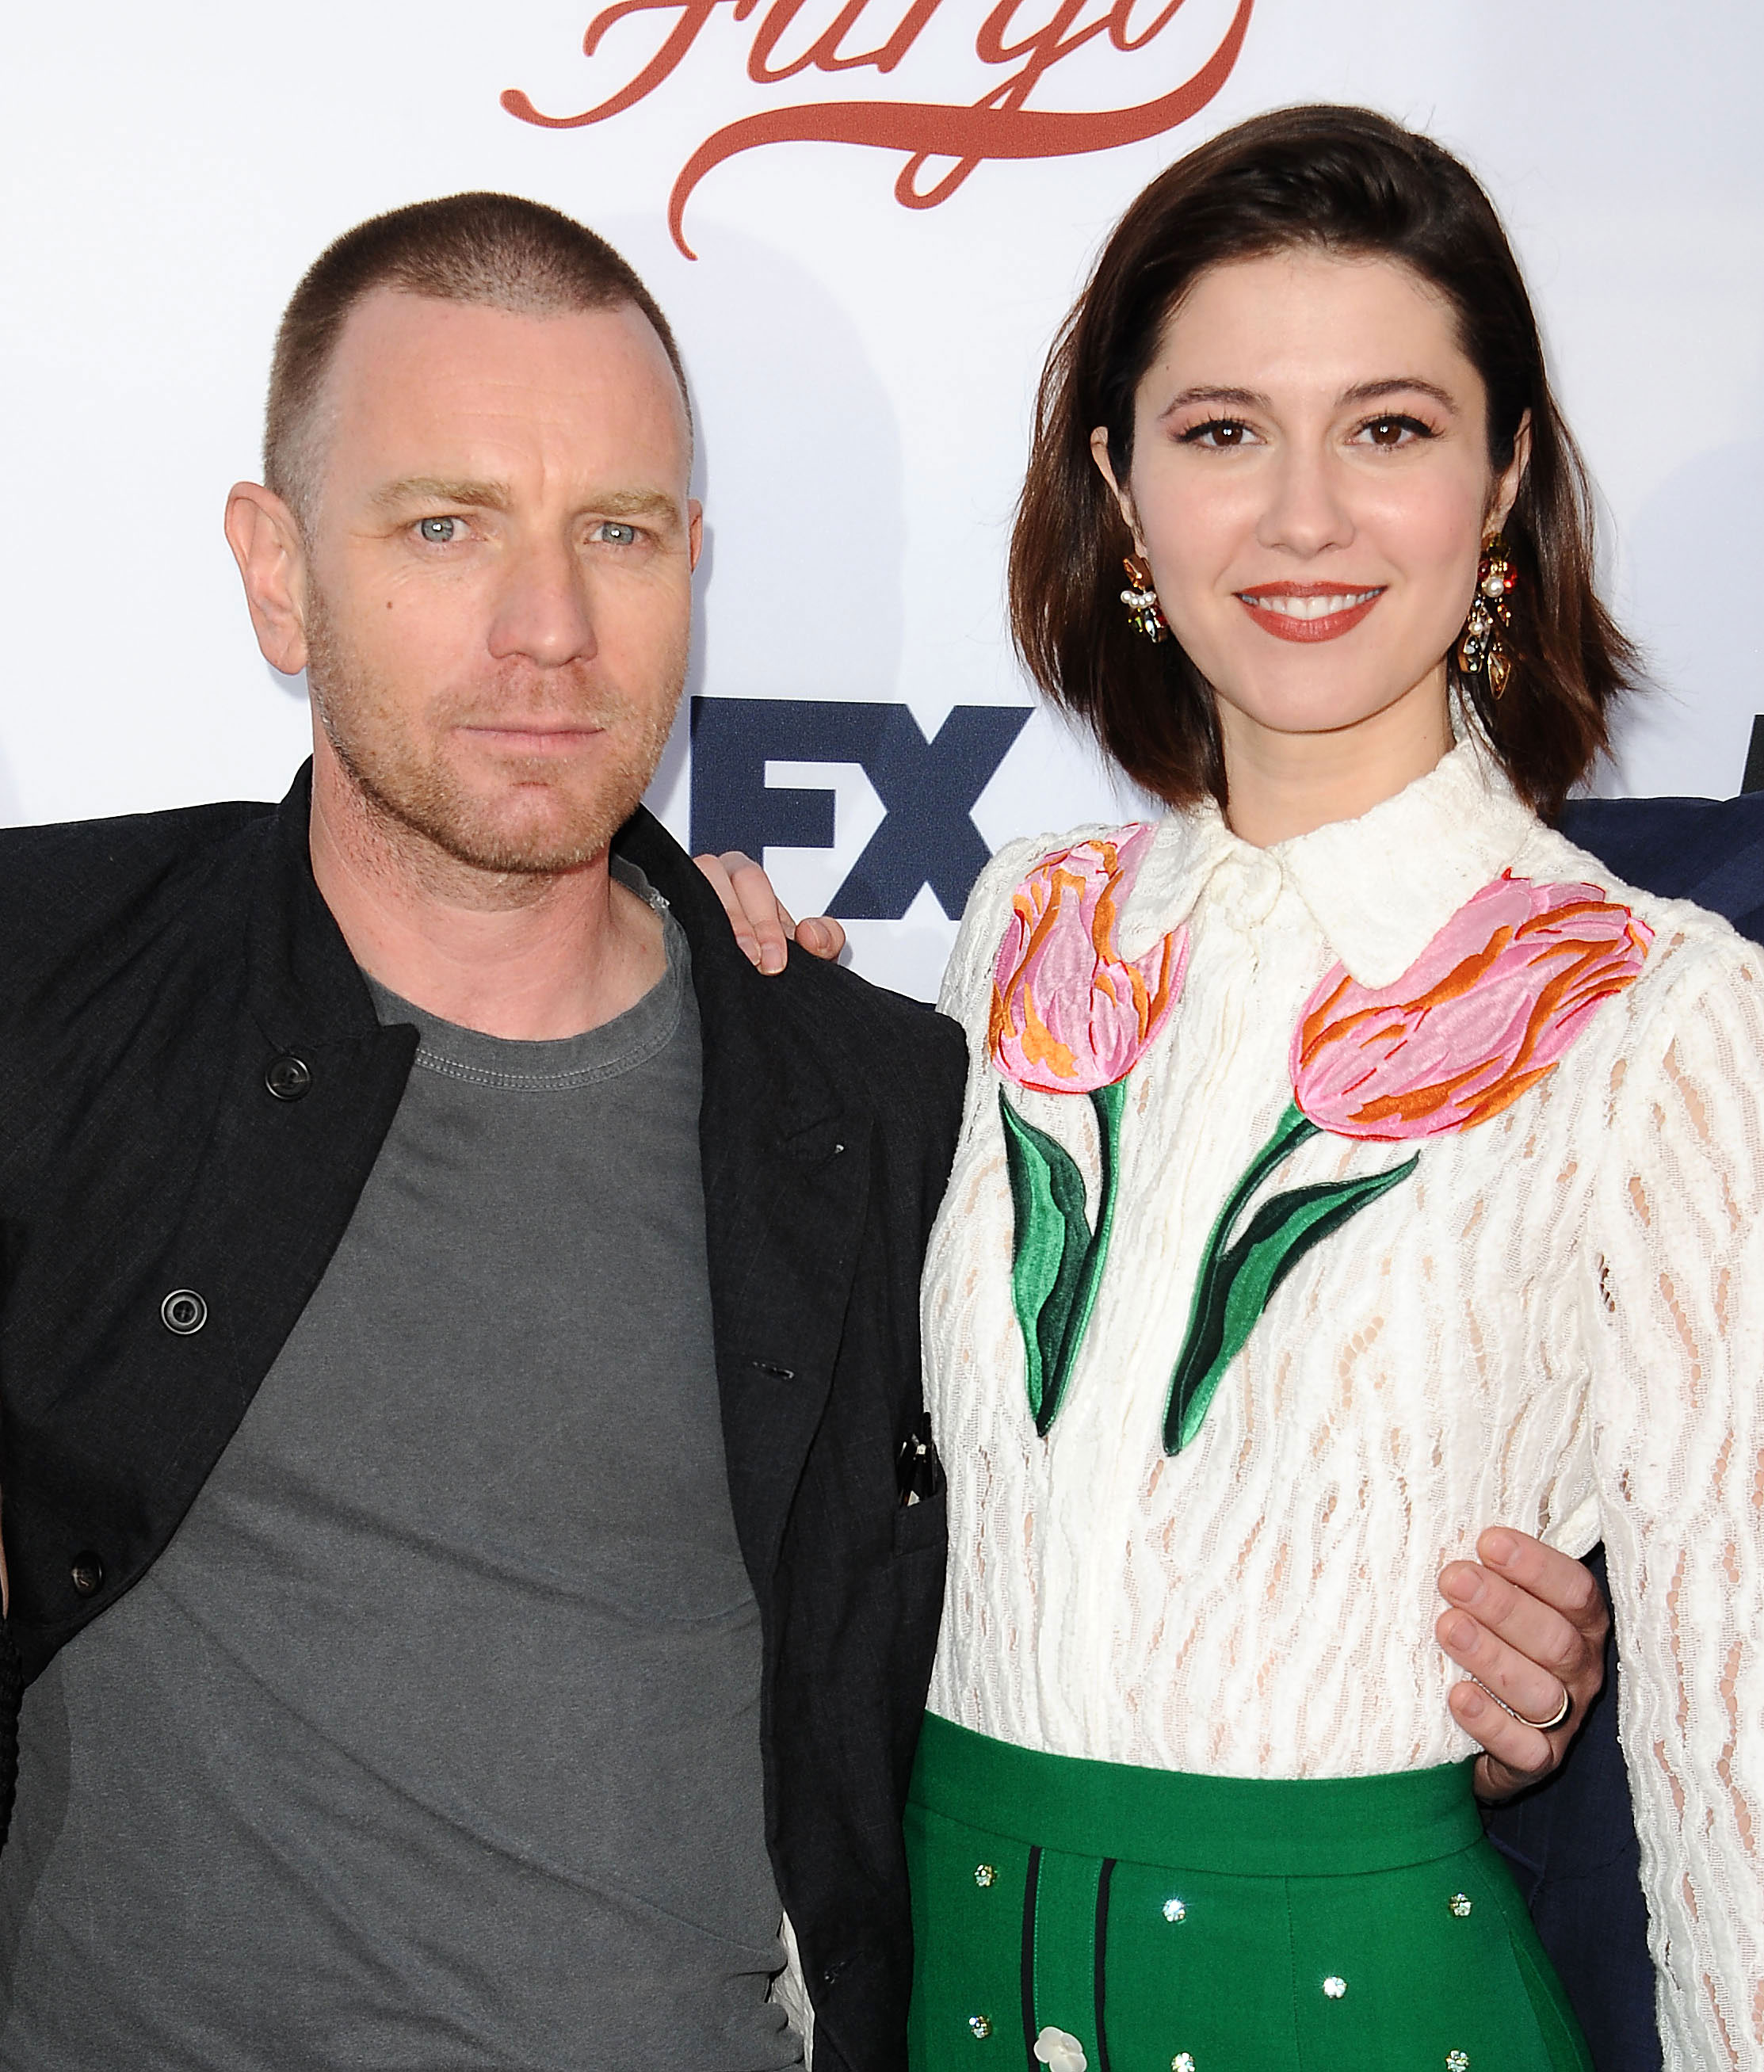 """Ewan McGregor's Daughter Clara Calls Him an 'A--hole' for Leaving Her Mom Eve Mavrakis - Ewan McGregor and Mary Elizabeth Winstead attend the """"Fargo"""" For Your Consideration event at Saban Media Center on May 11, 2017 in North Hollywood, California."""